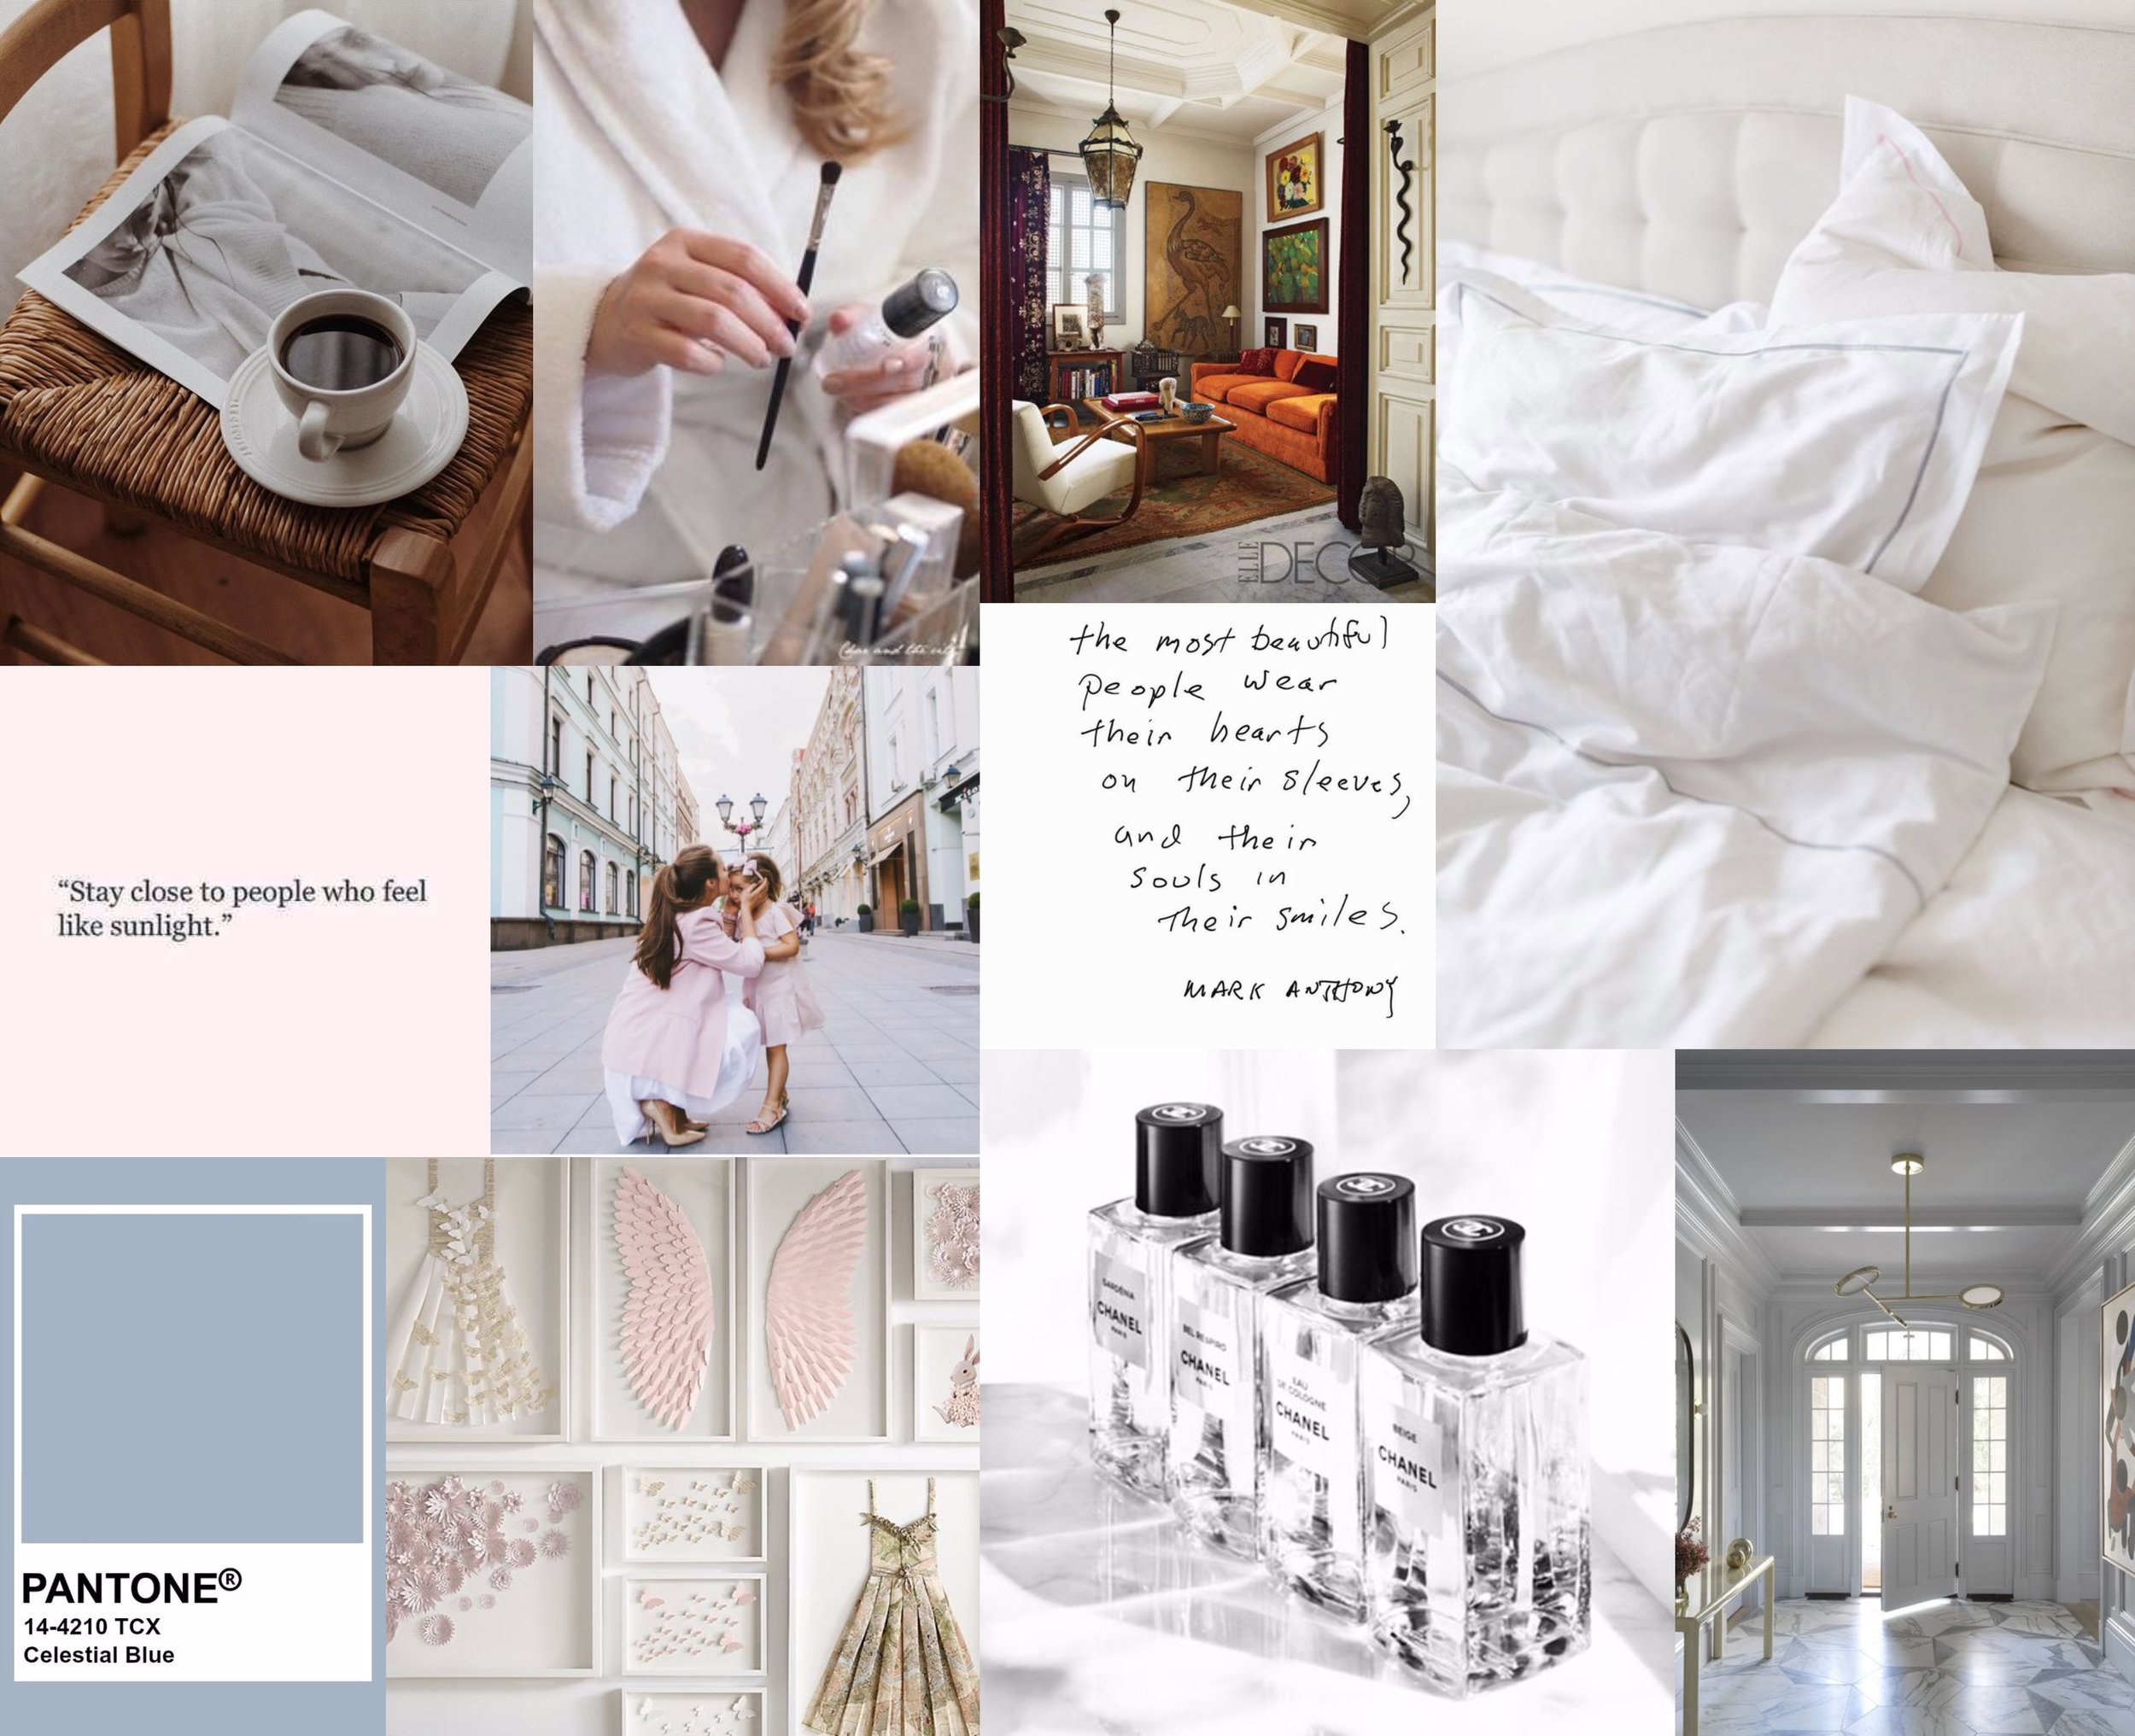 Some parts of my vision board right now, there is just so much going on and there are so many goals to achieve!